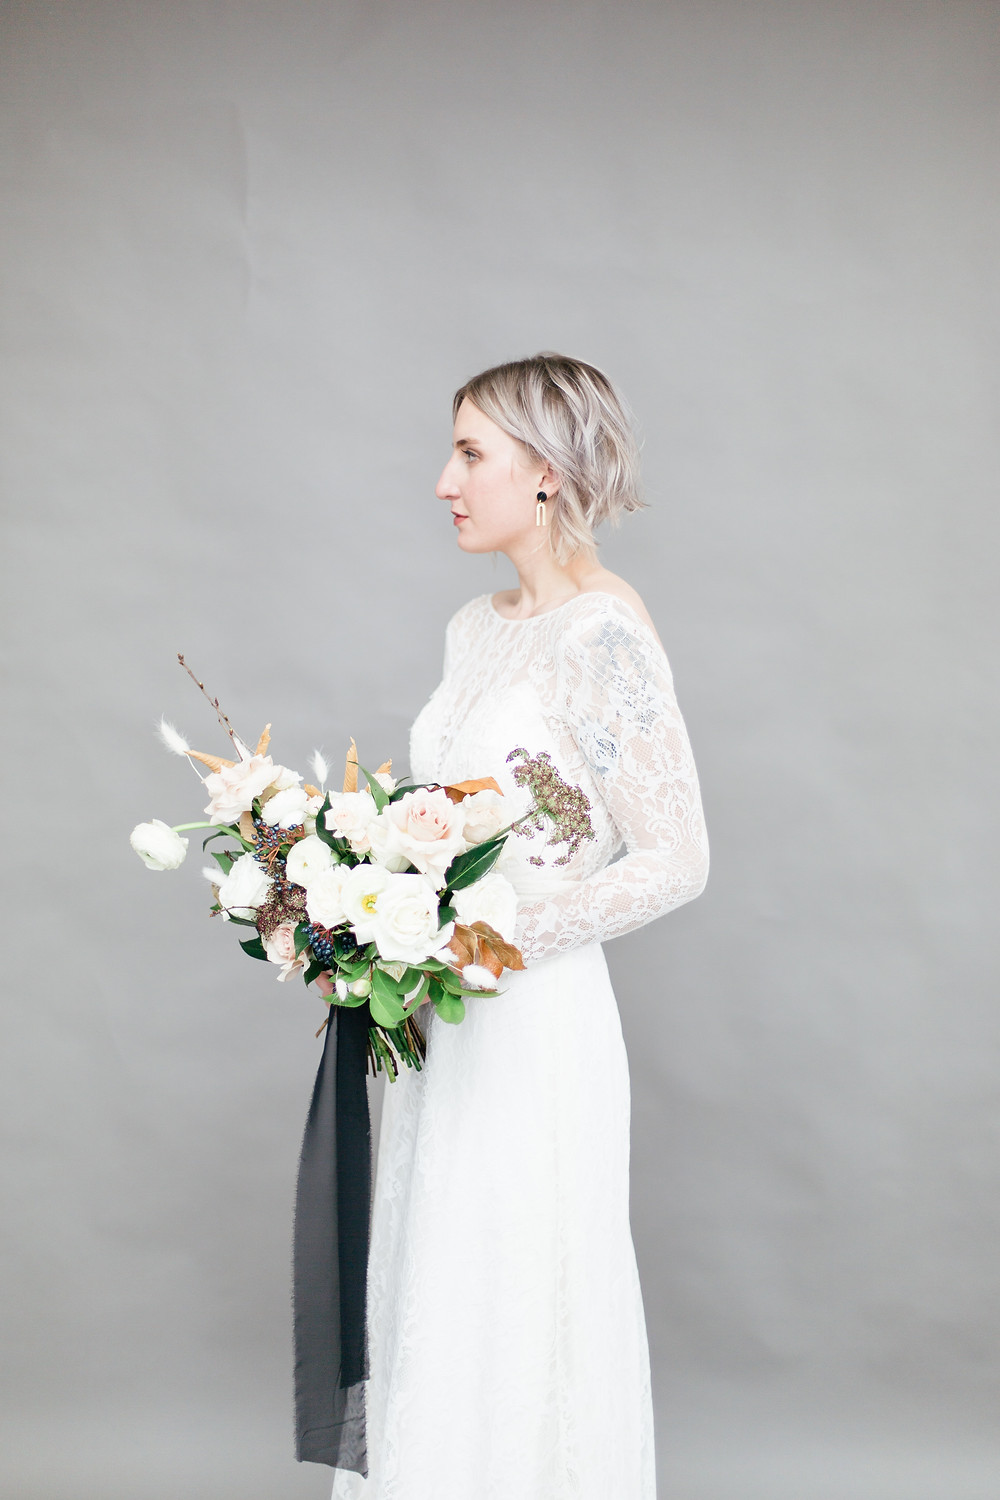 Styled shoot with Katrina Tuttle gown, Little thistle florals, Studs astray jewelry, Graceful weddings event coordination and Bowers construction venue